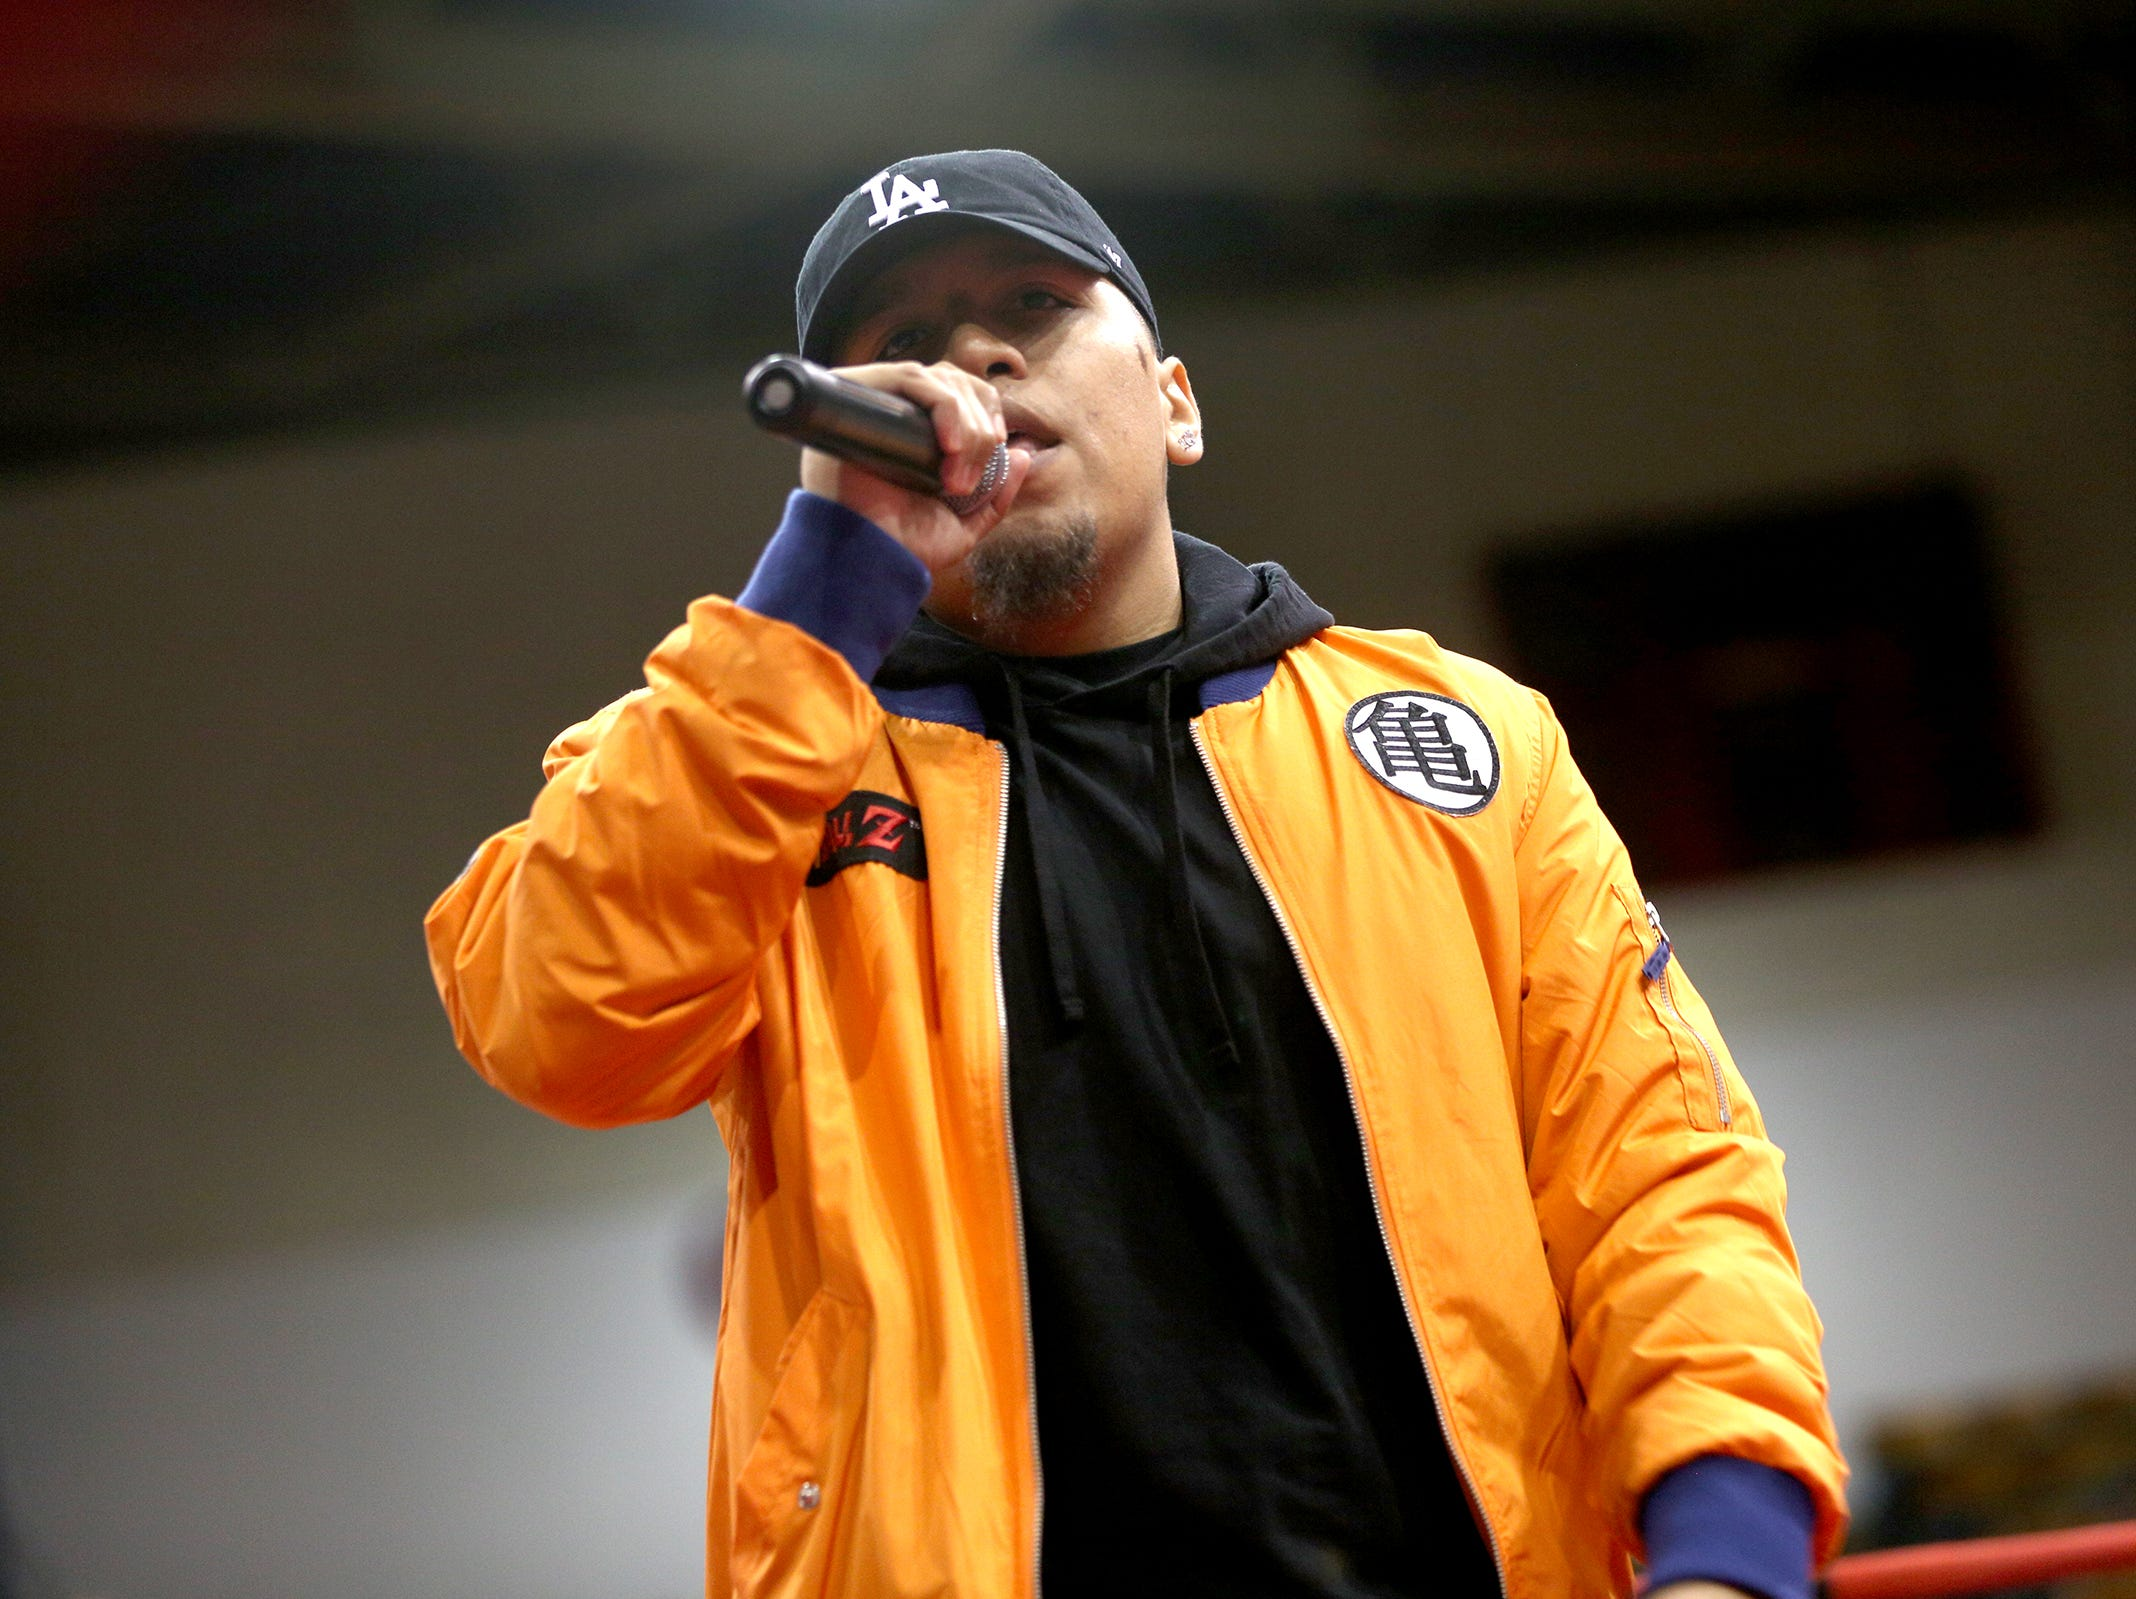 Salem rapper Kevin Gomez who goes by St. Alex performs during an intermission at the Oregon Golden Gloves championship matches at the Salem Armory on Saturday, Feb. 2, 2019.